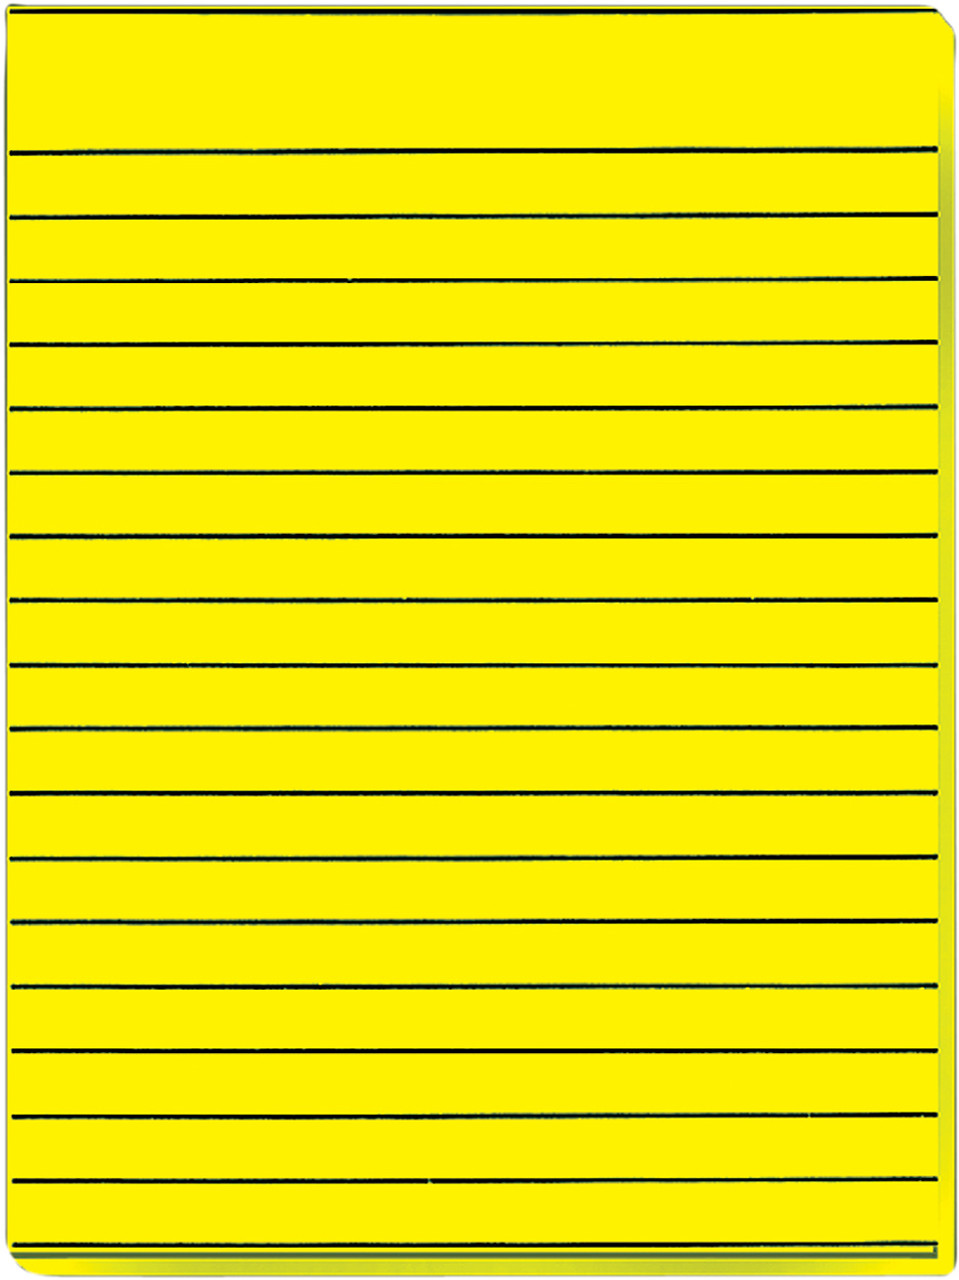 """Yellow Bold Line Writing Paper, 1/2"""" spacing, Double-Sided"""